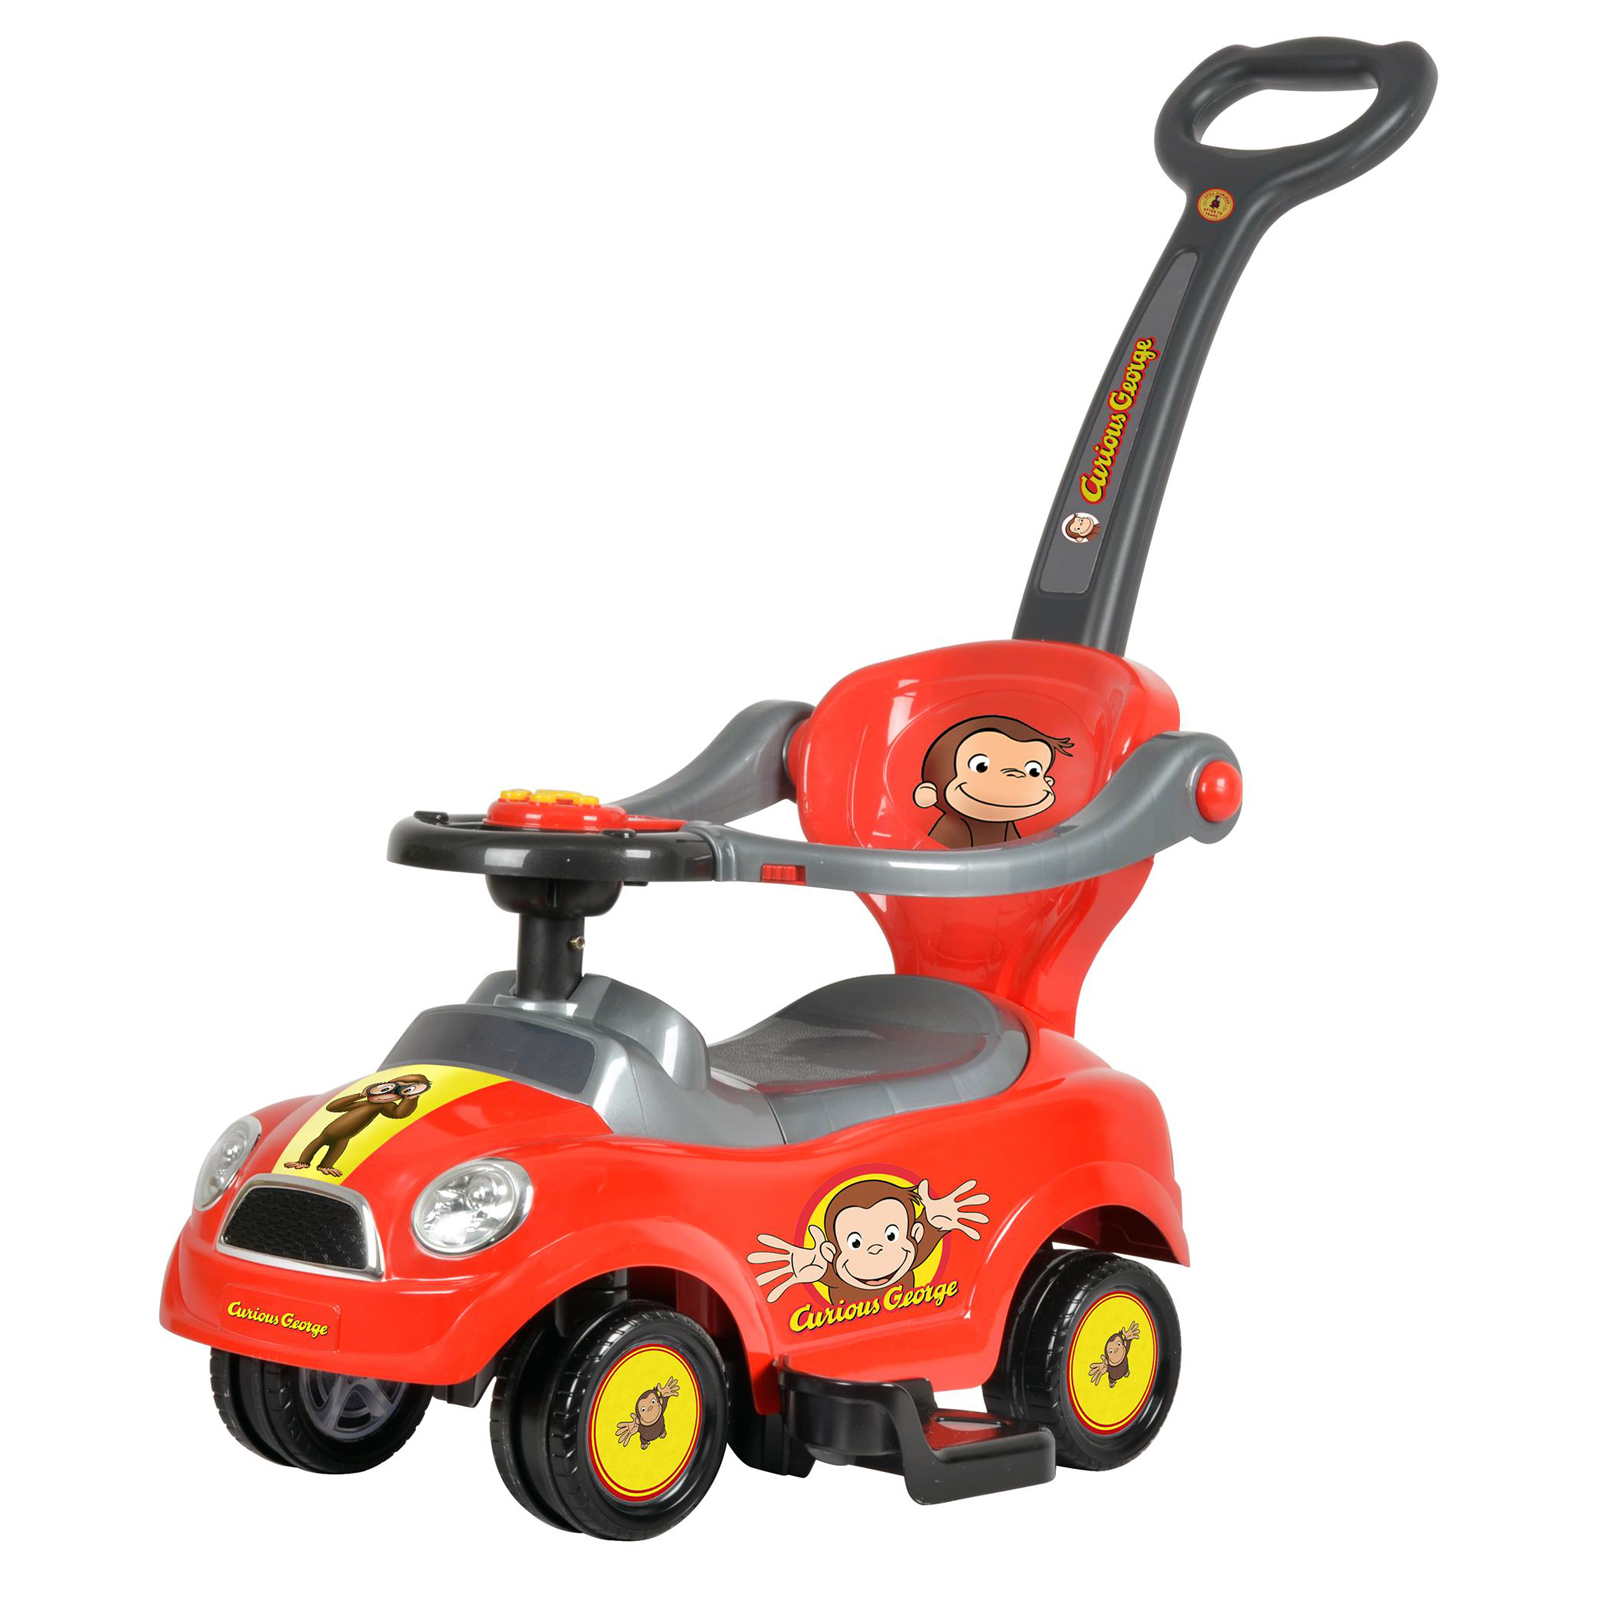 Curious George 3 in 1 Kids Ride On Push Car